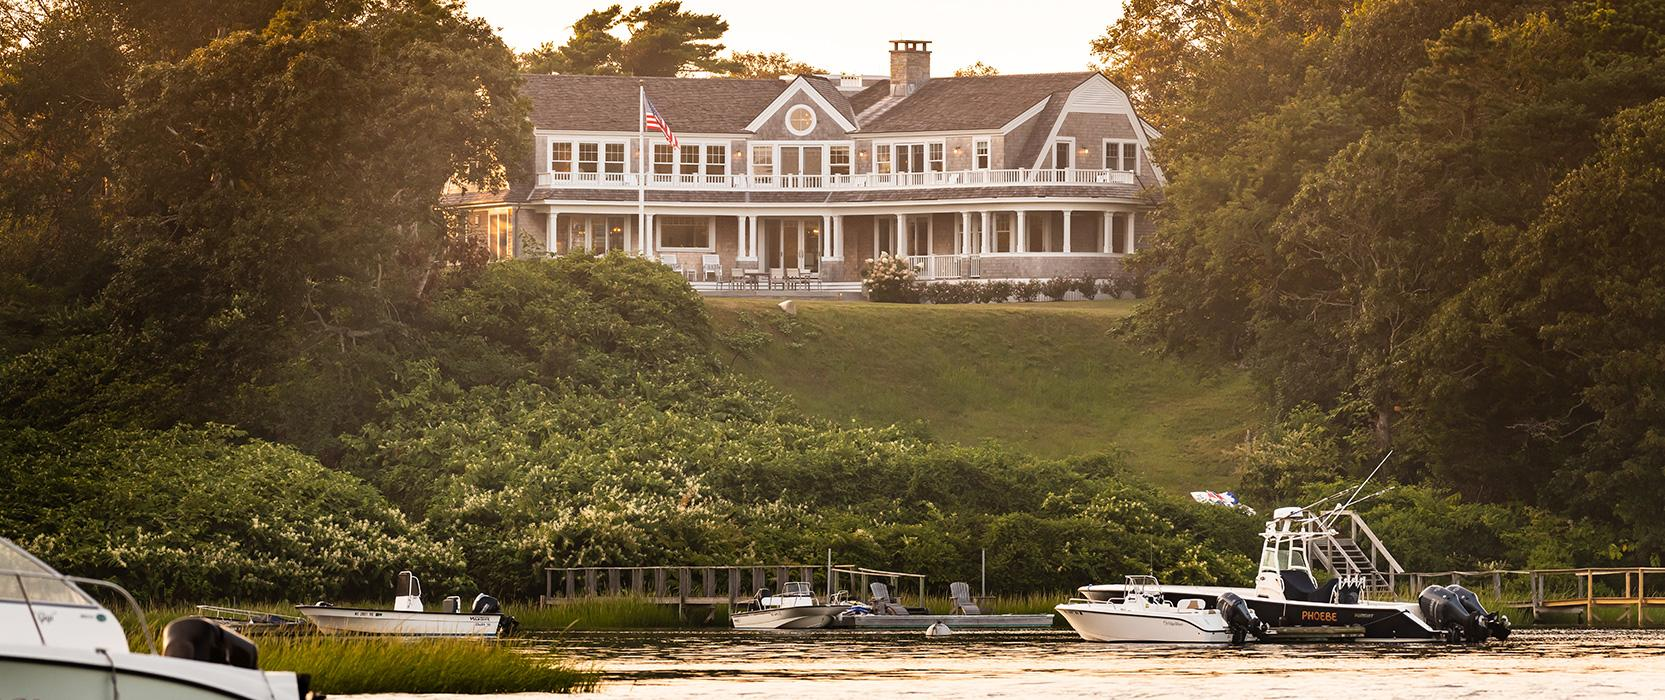 View of house on the cape from the water